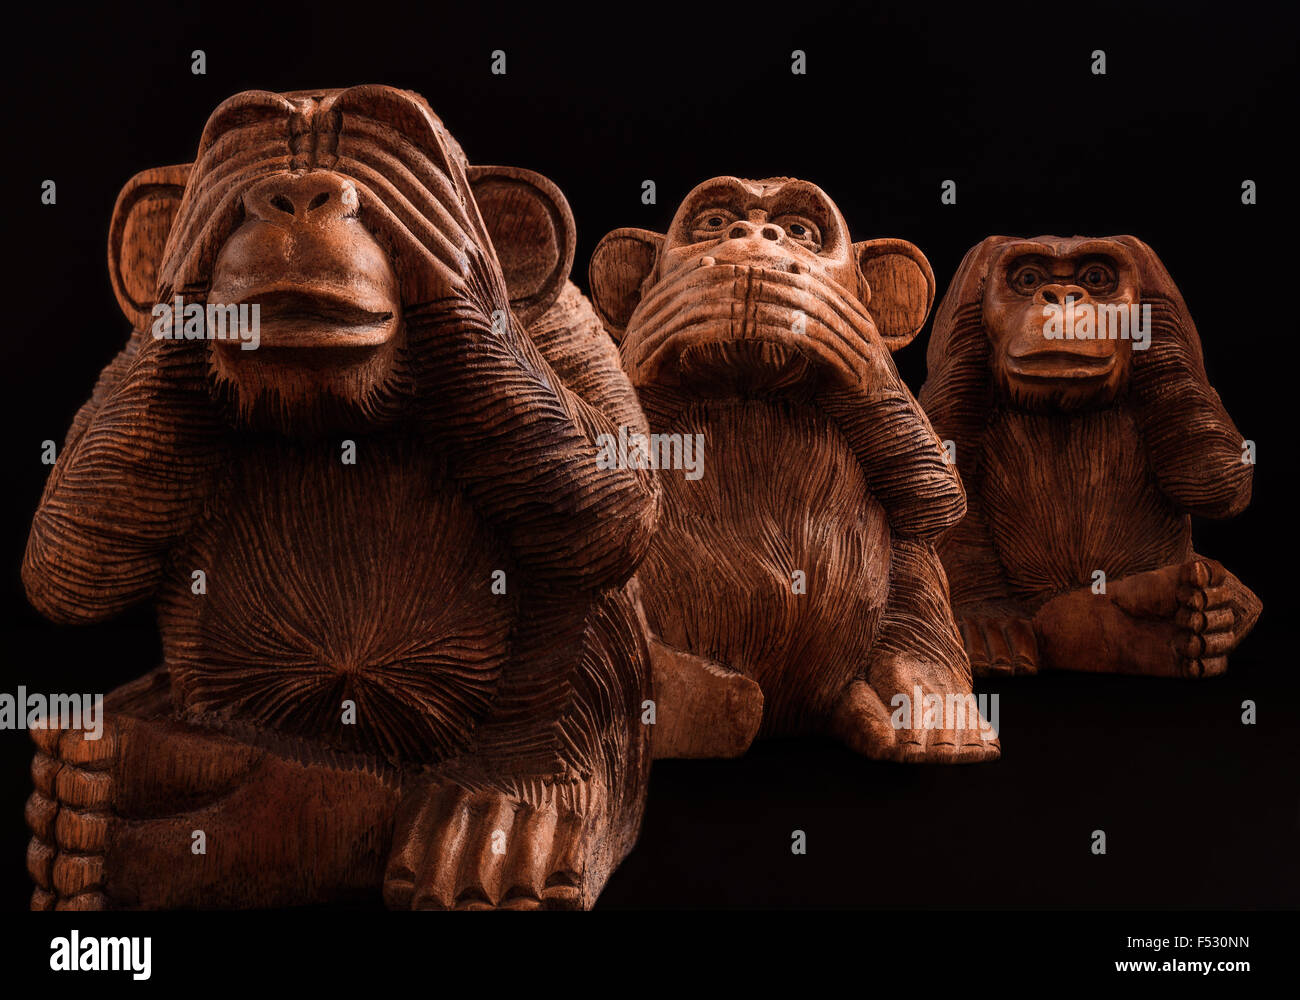 Three wise monkeys wooden ornaments - Three Wise Monkeys Figurines Of Wood On A Black Background Stock Image